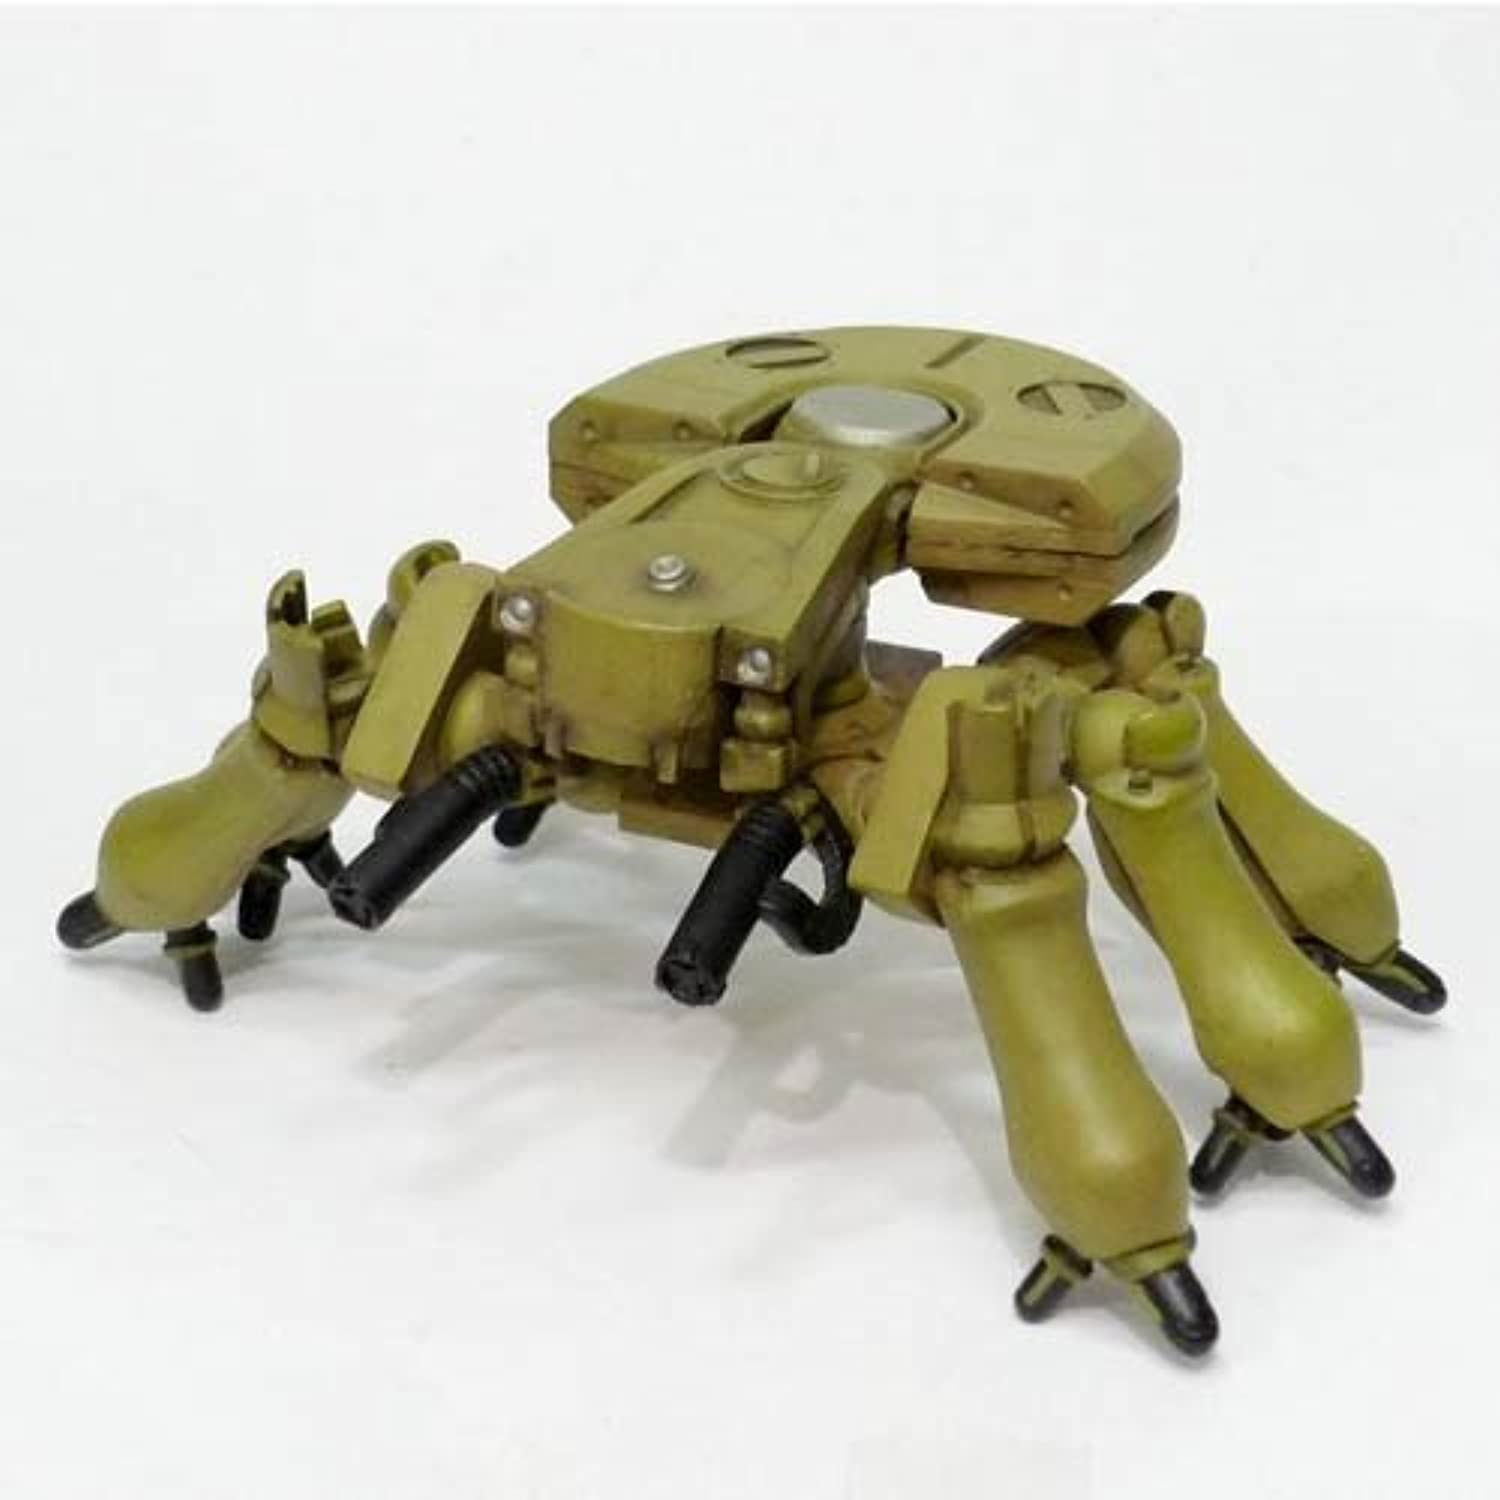 GHOST IN THE SHELL 攻殻機動隊フィギュア BOX版 6課戦車 単品